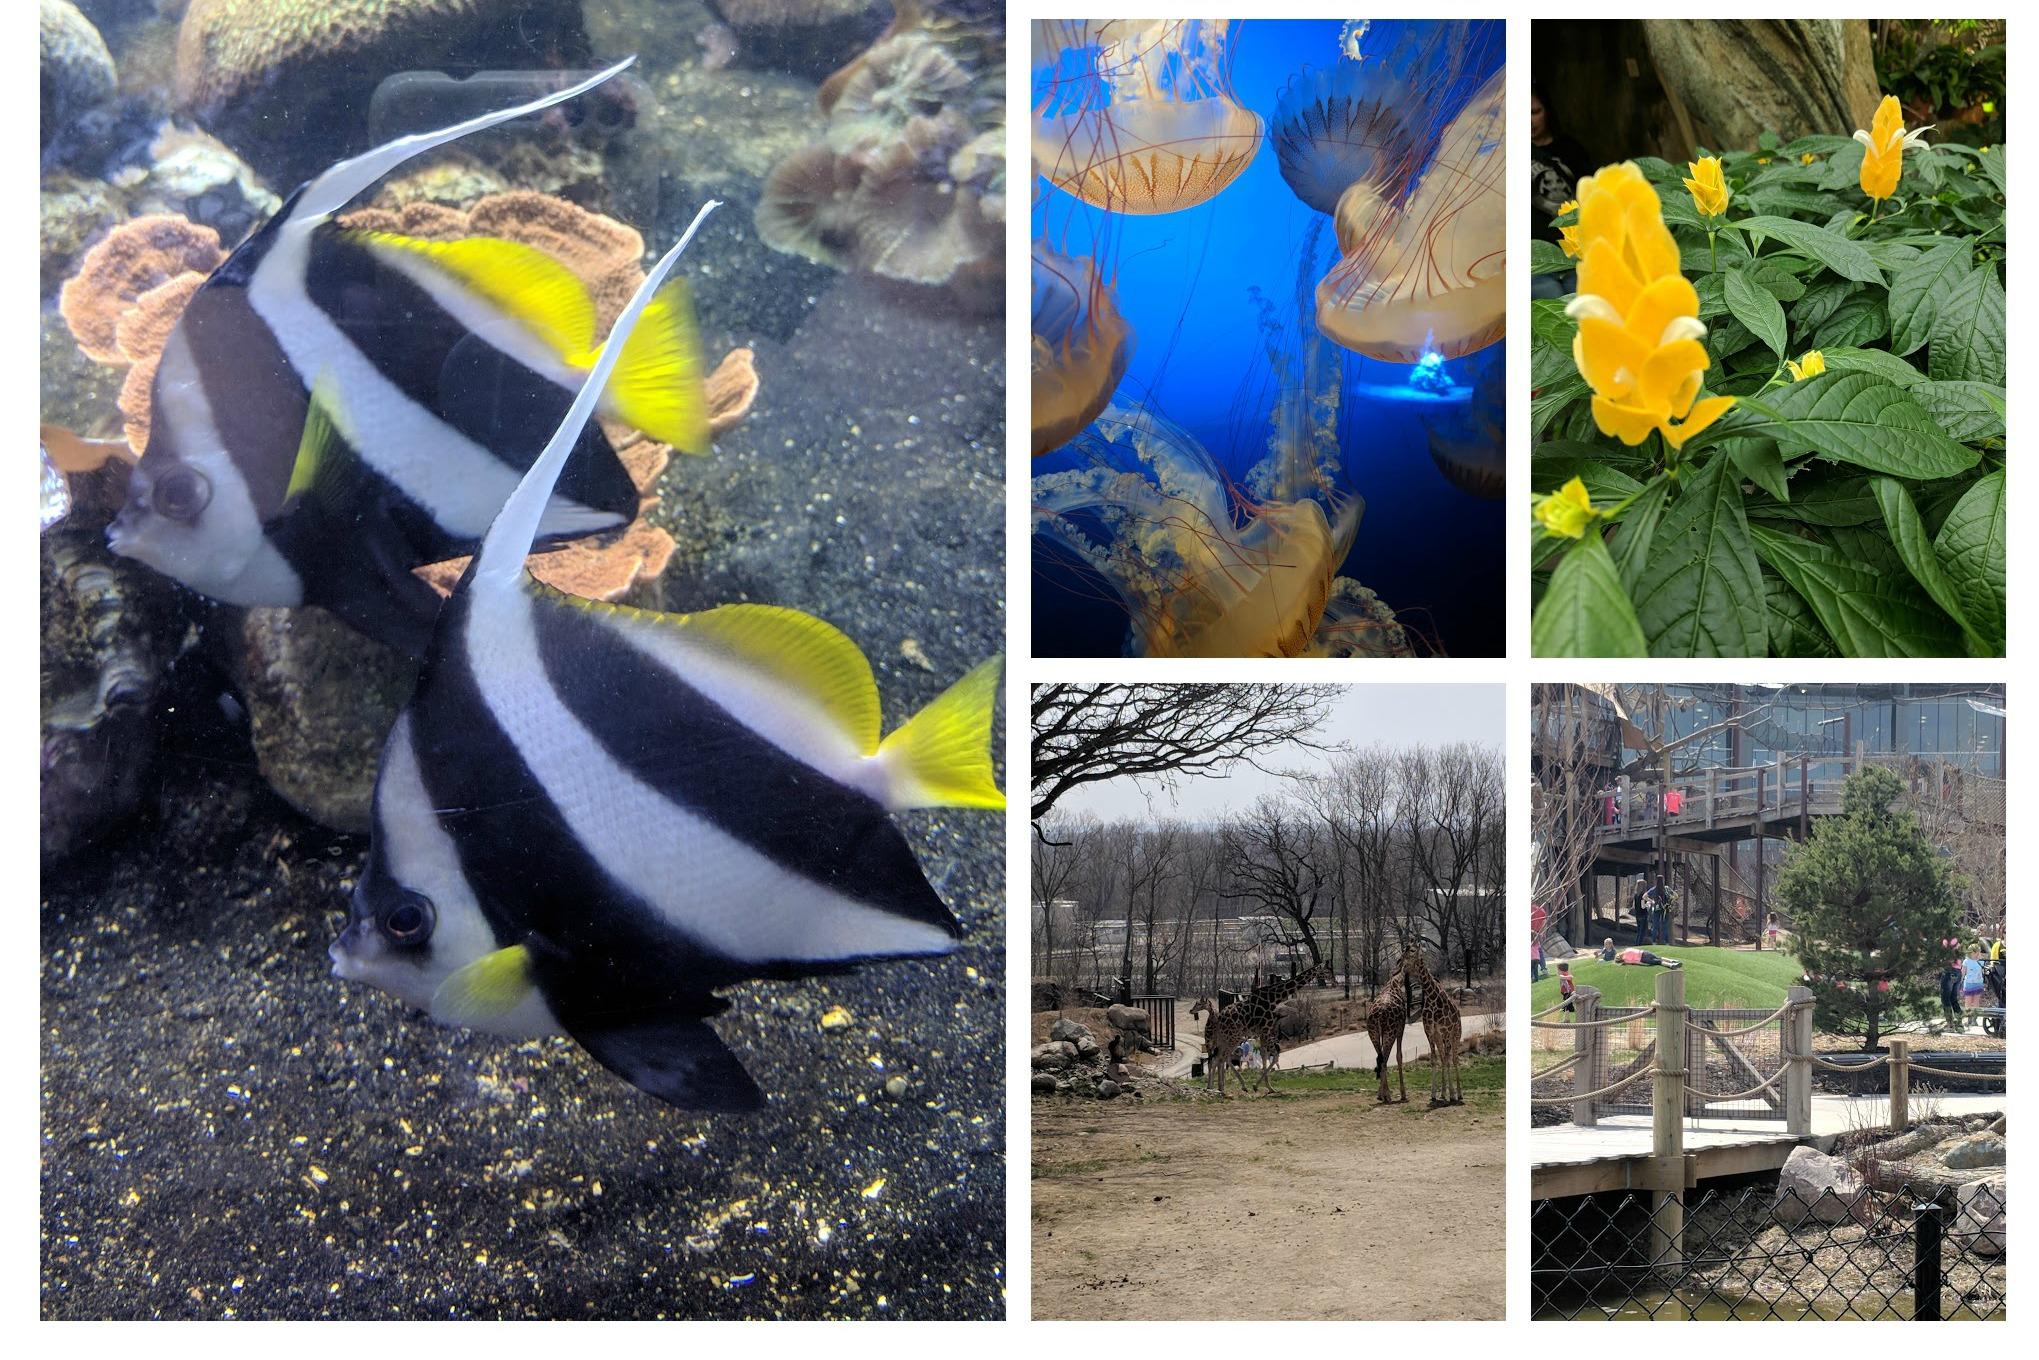 Collage Henry Doorly Zoo Omaha NE